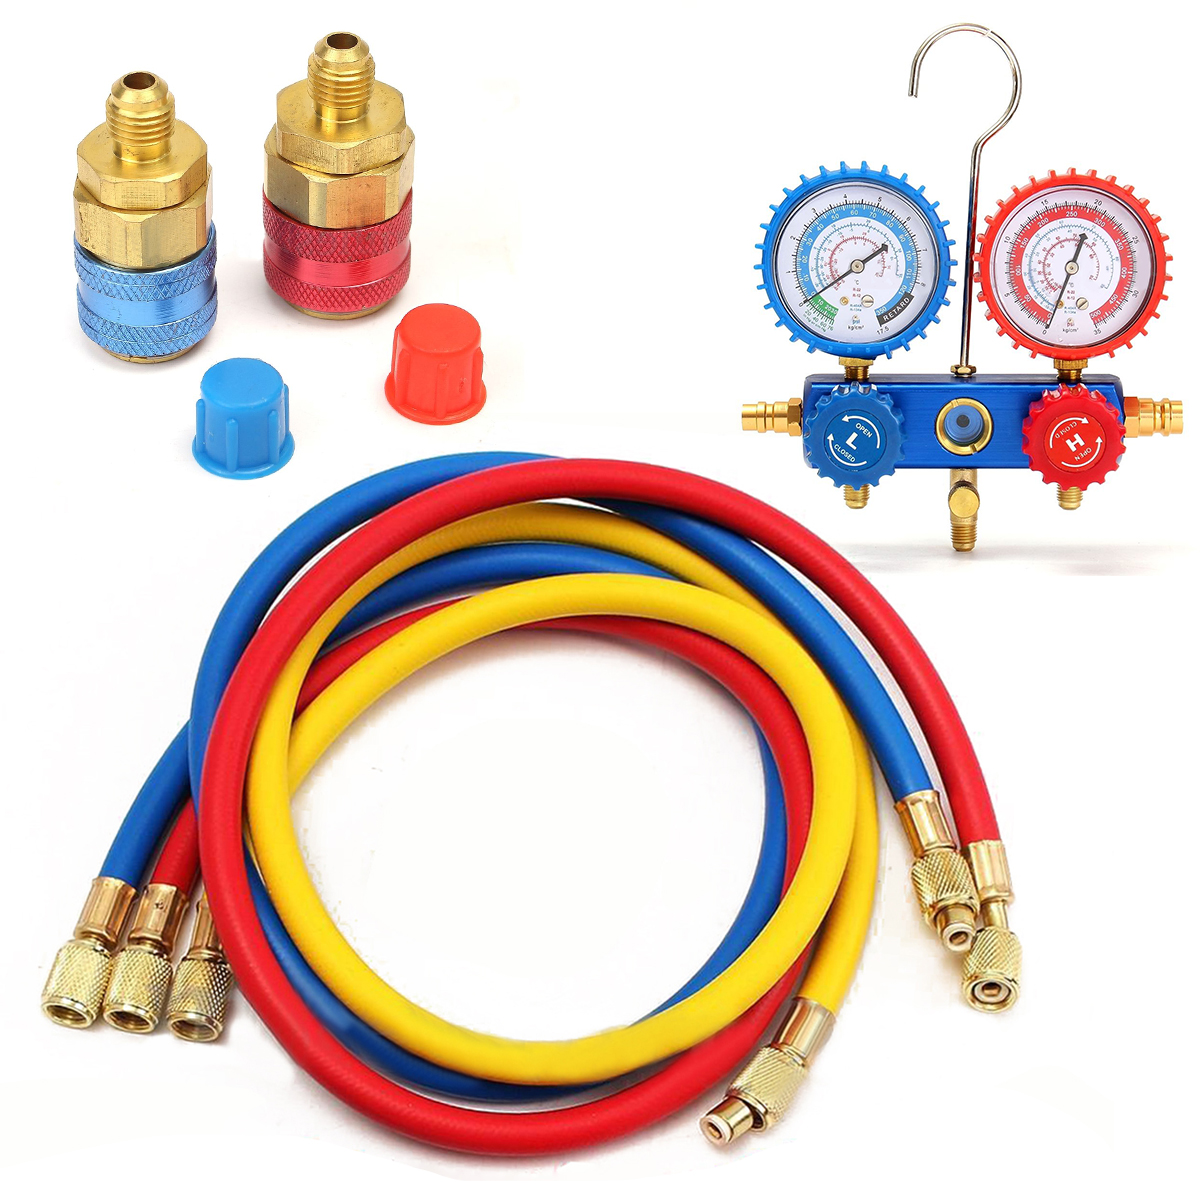 1 Set Car Manifold Gauge 1/4 SAE with 90cm Charging Hoses Kit Set For R134A Refrigerant Air Conditioning A/C System air conditioning pressure indicator with charging hoses